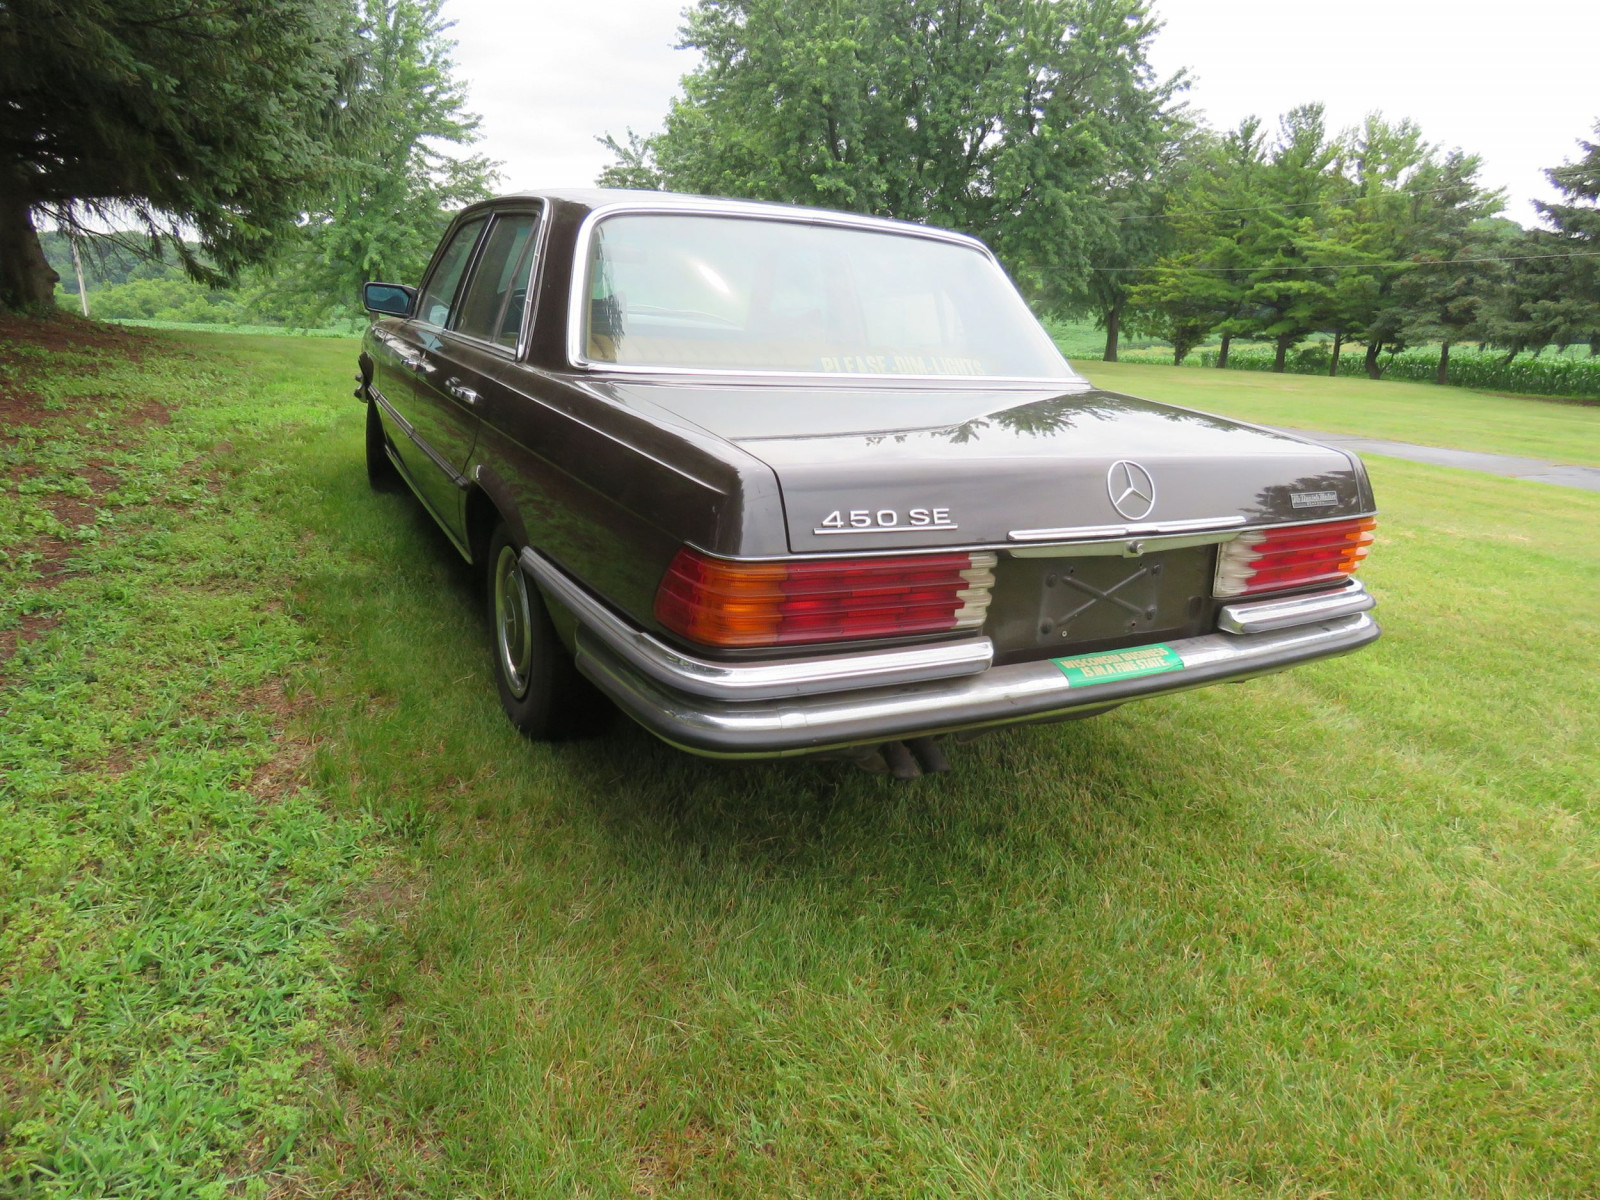 1973 Mercedes 450 SE 4dr Sedan - Image 4